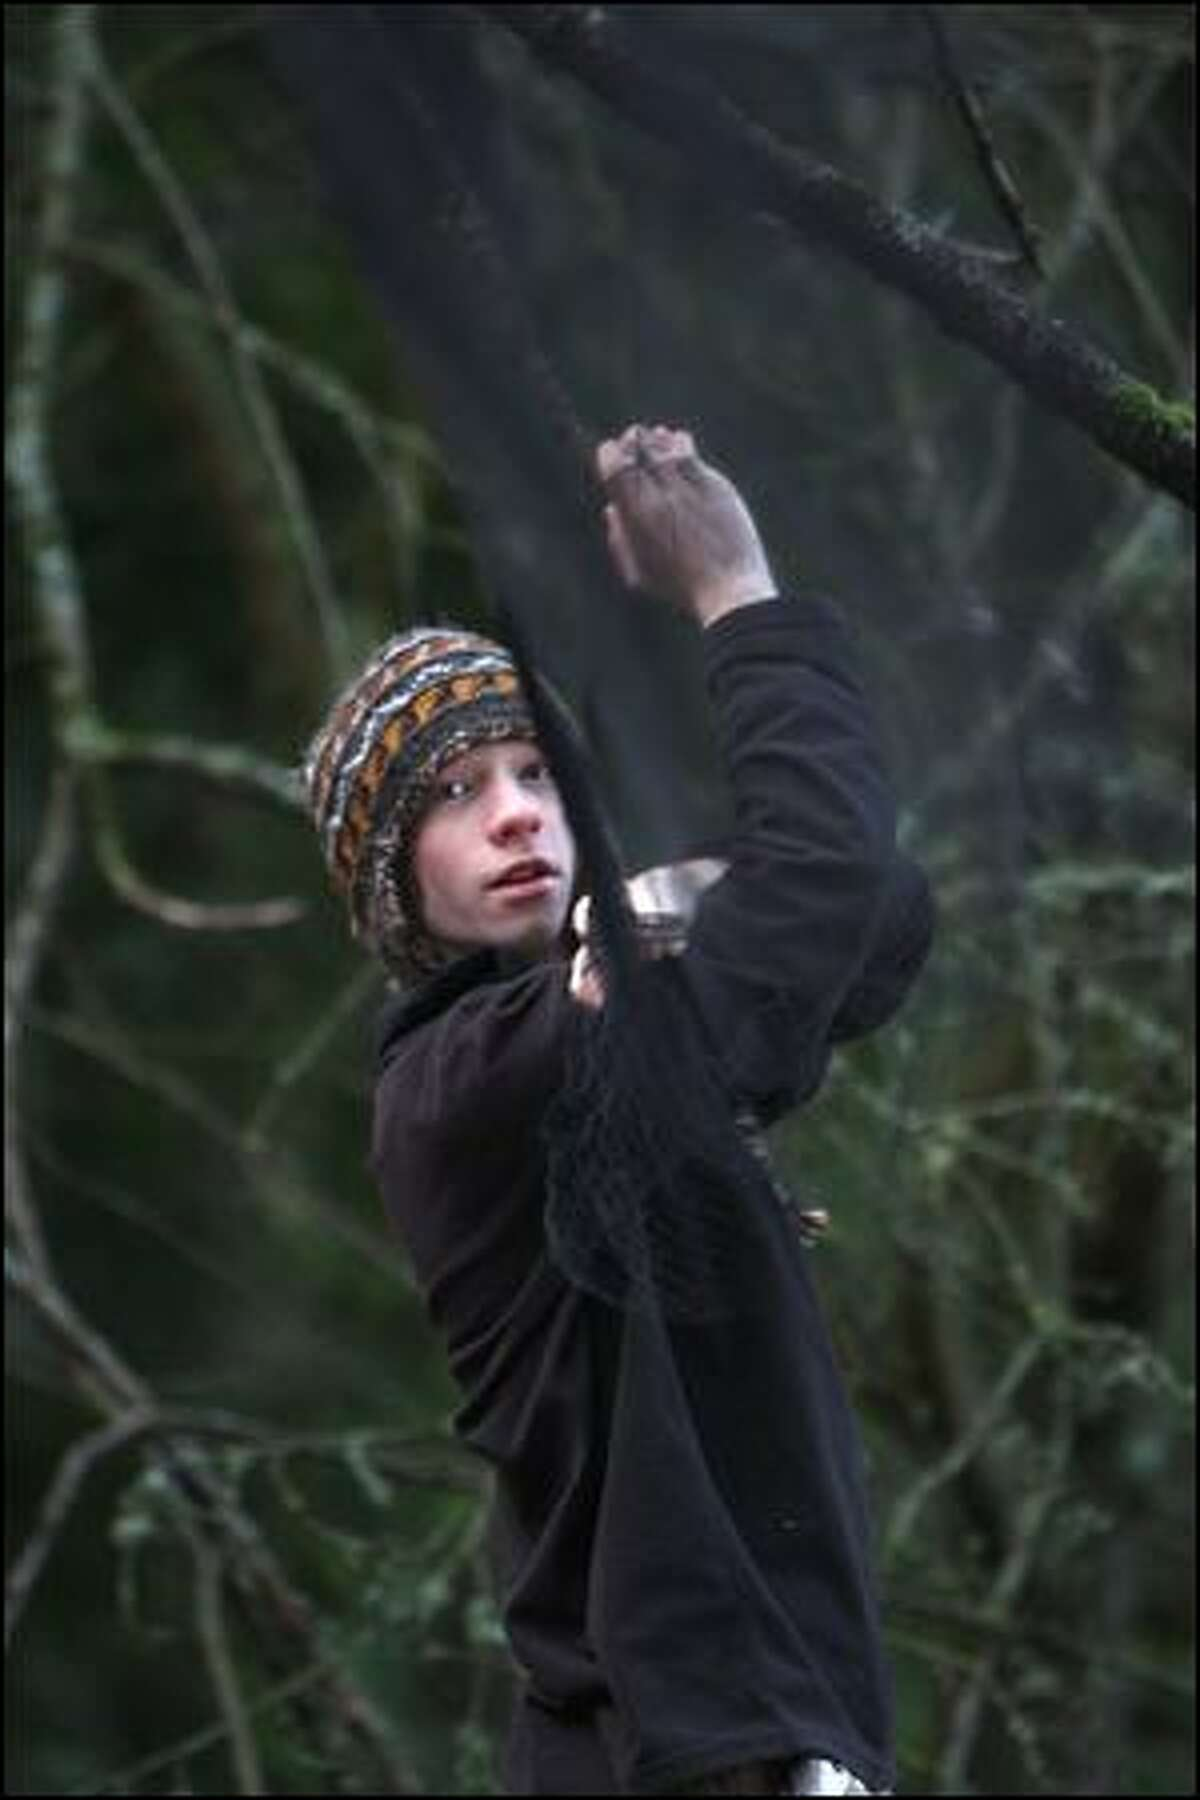 Brendan Higgins, 16, of Seattle, untangles a mist net at Seward Park.